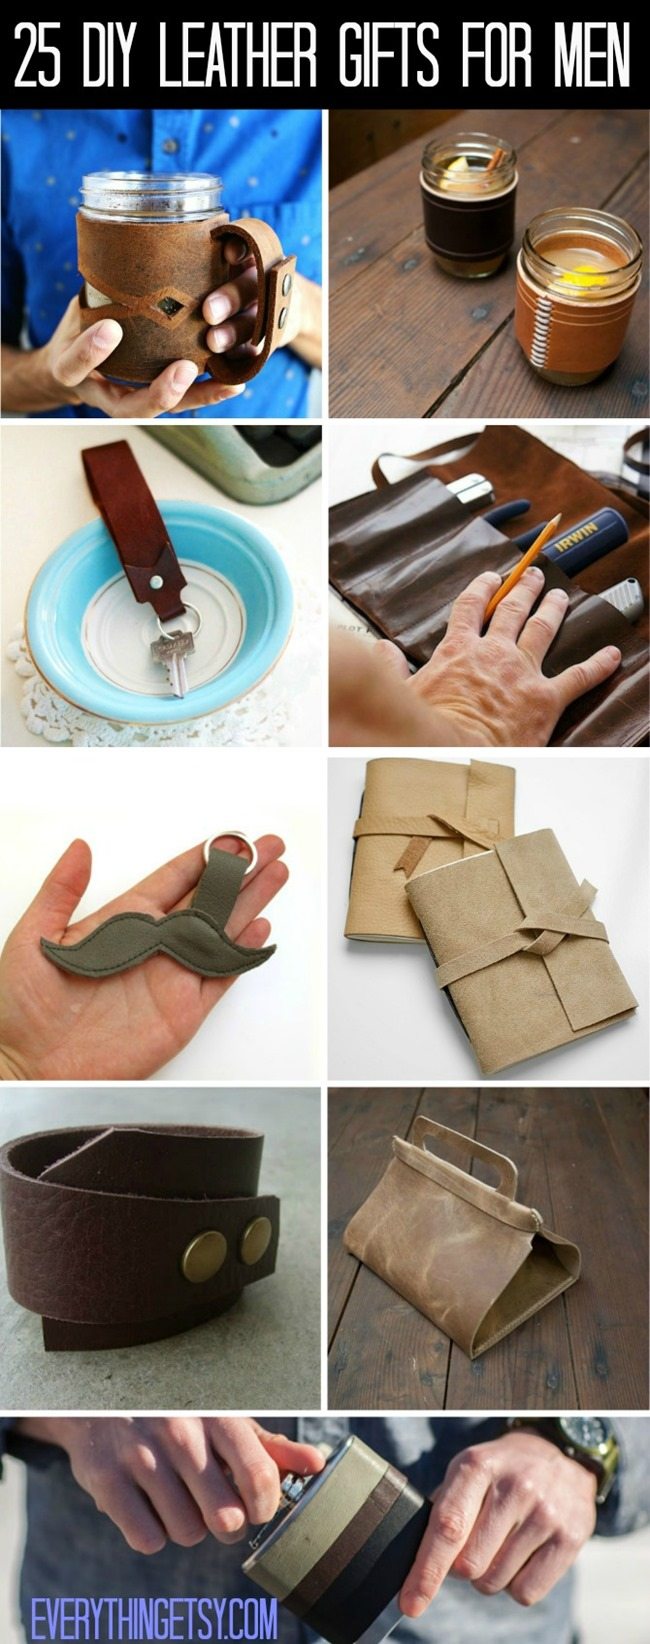 mens craft ideas 25 diy leather gifts for everythingetsy 2407